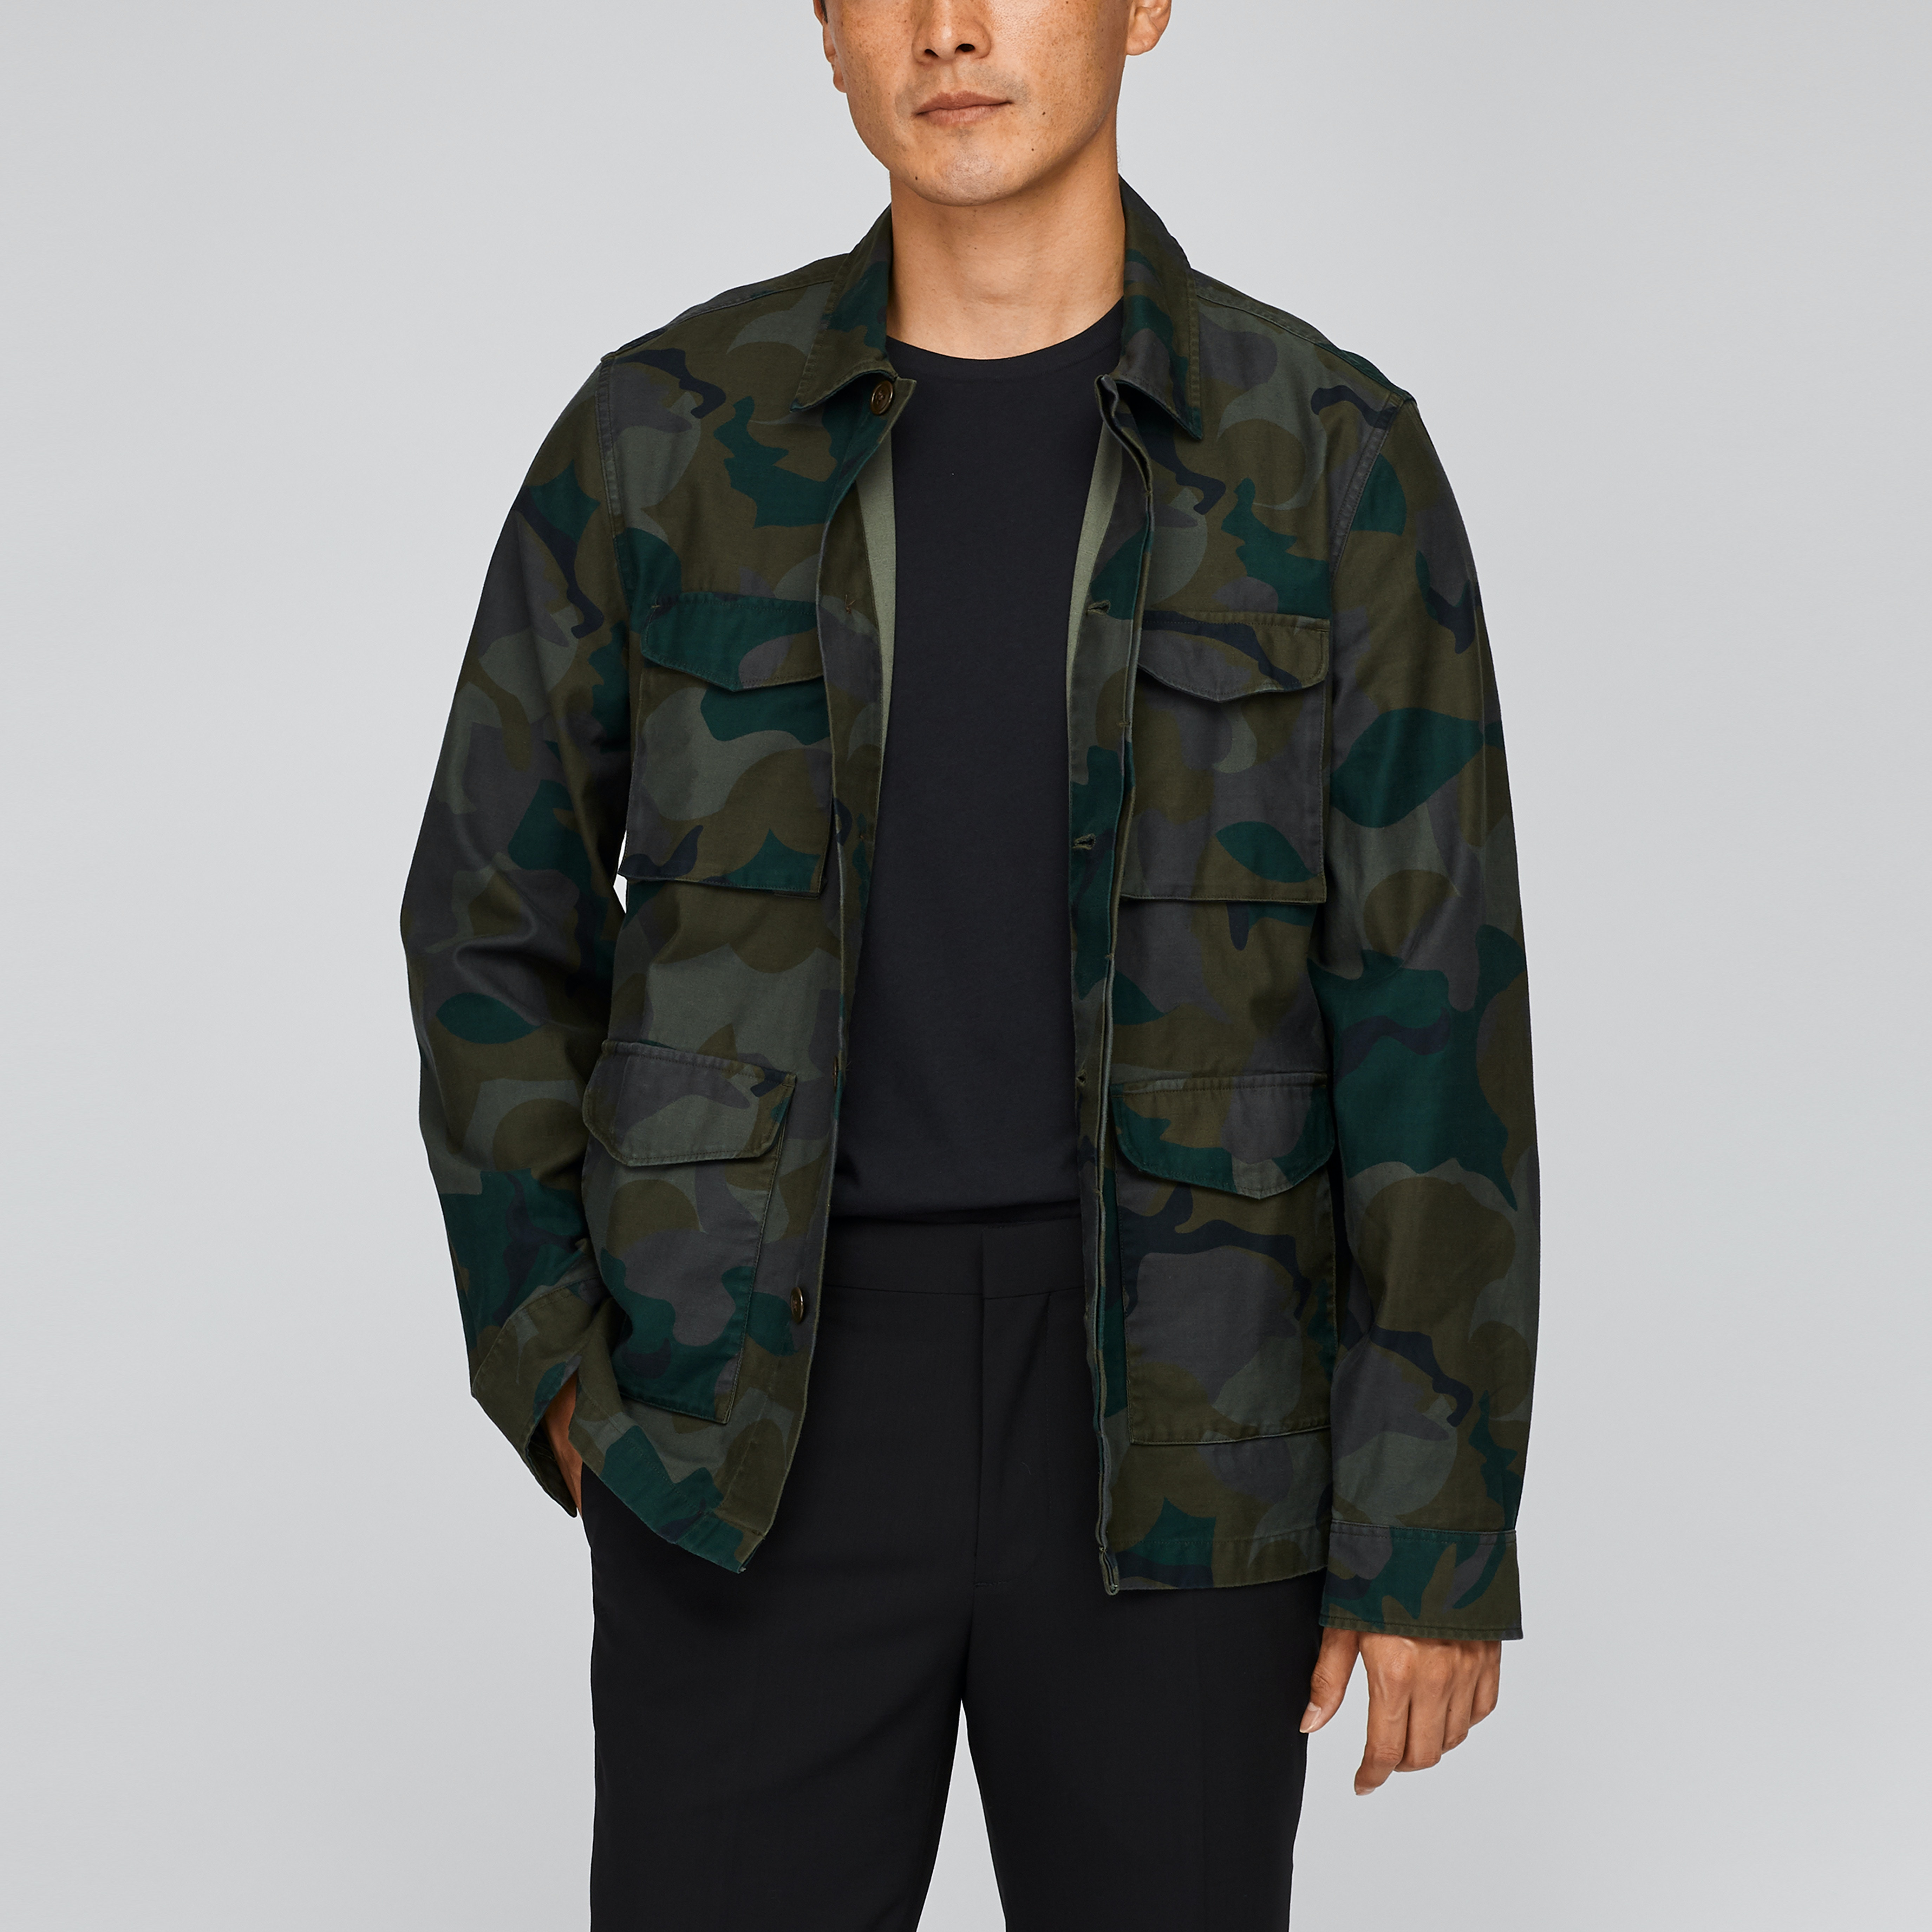 The Military Jacket